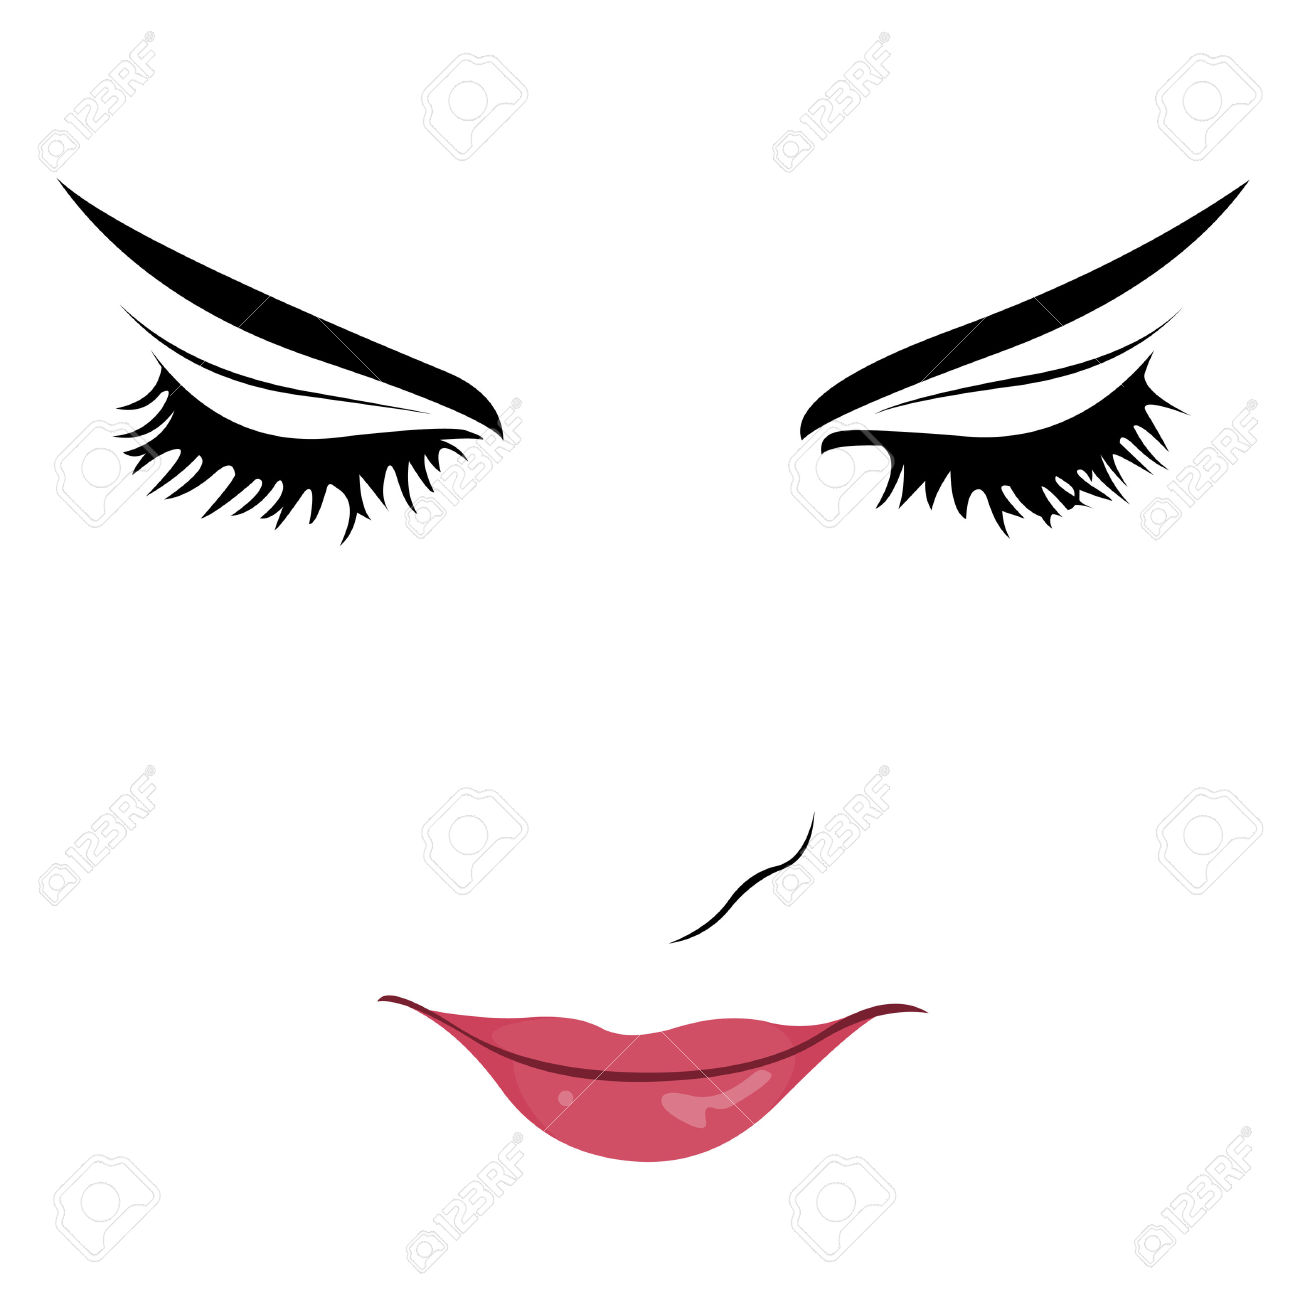 Beauty clipart pretty eye. Best woman eyes free